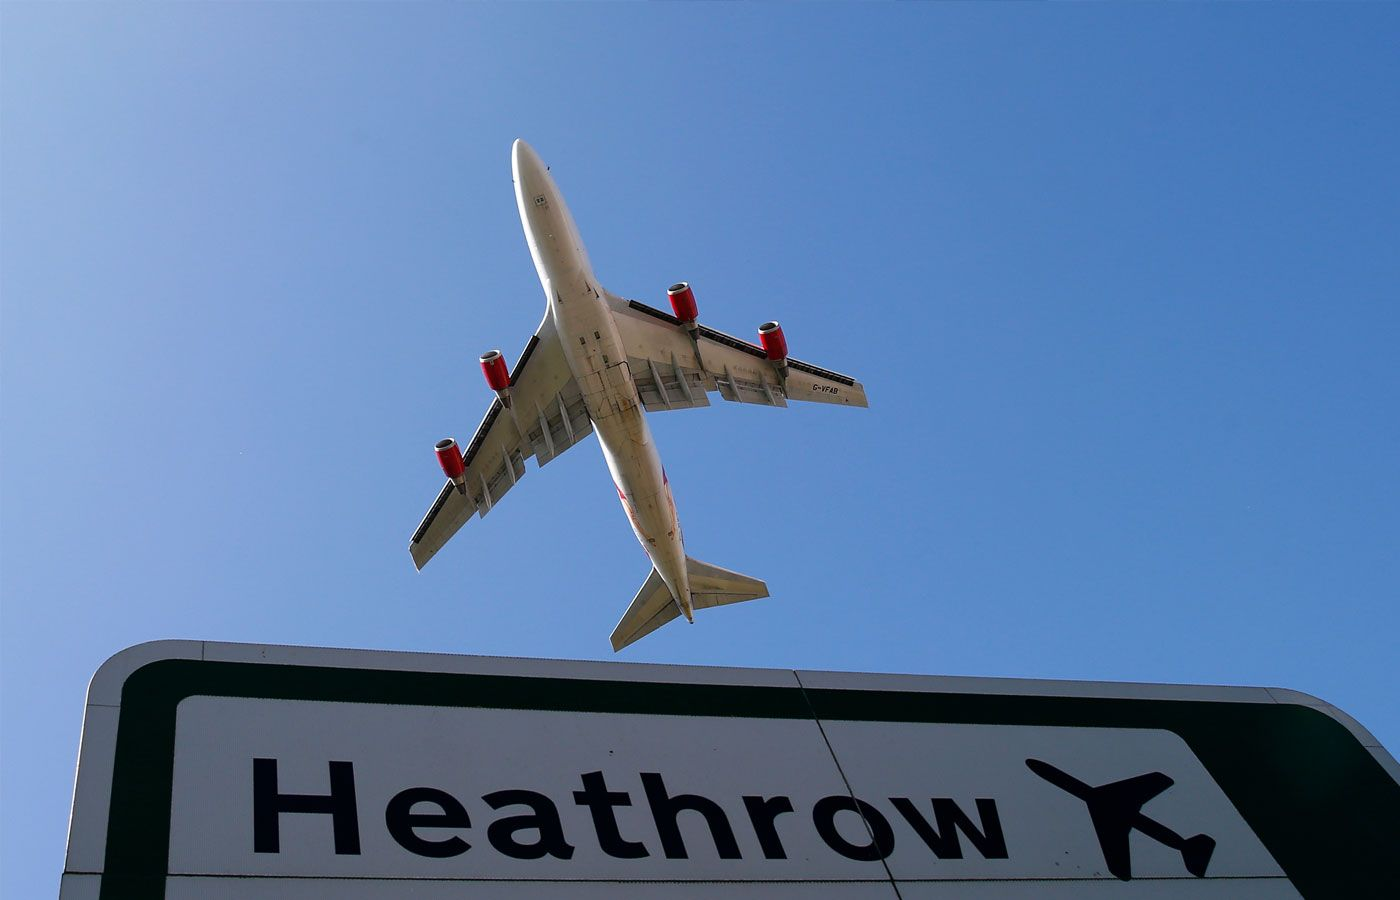 Heathrow's annual noise and contour report revealed noise footprint was at its smallest recorded level in 11 years. Night time jet movements also decreased by 32